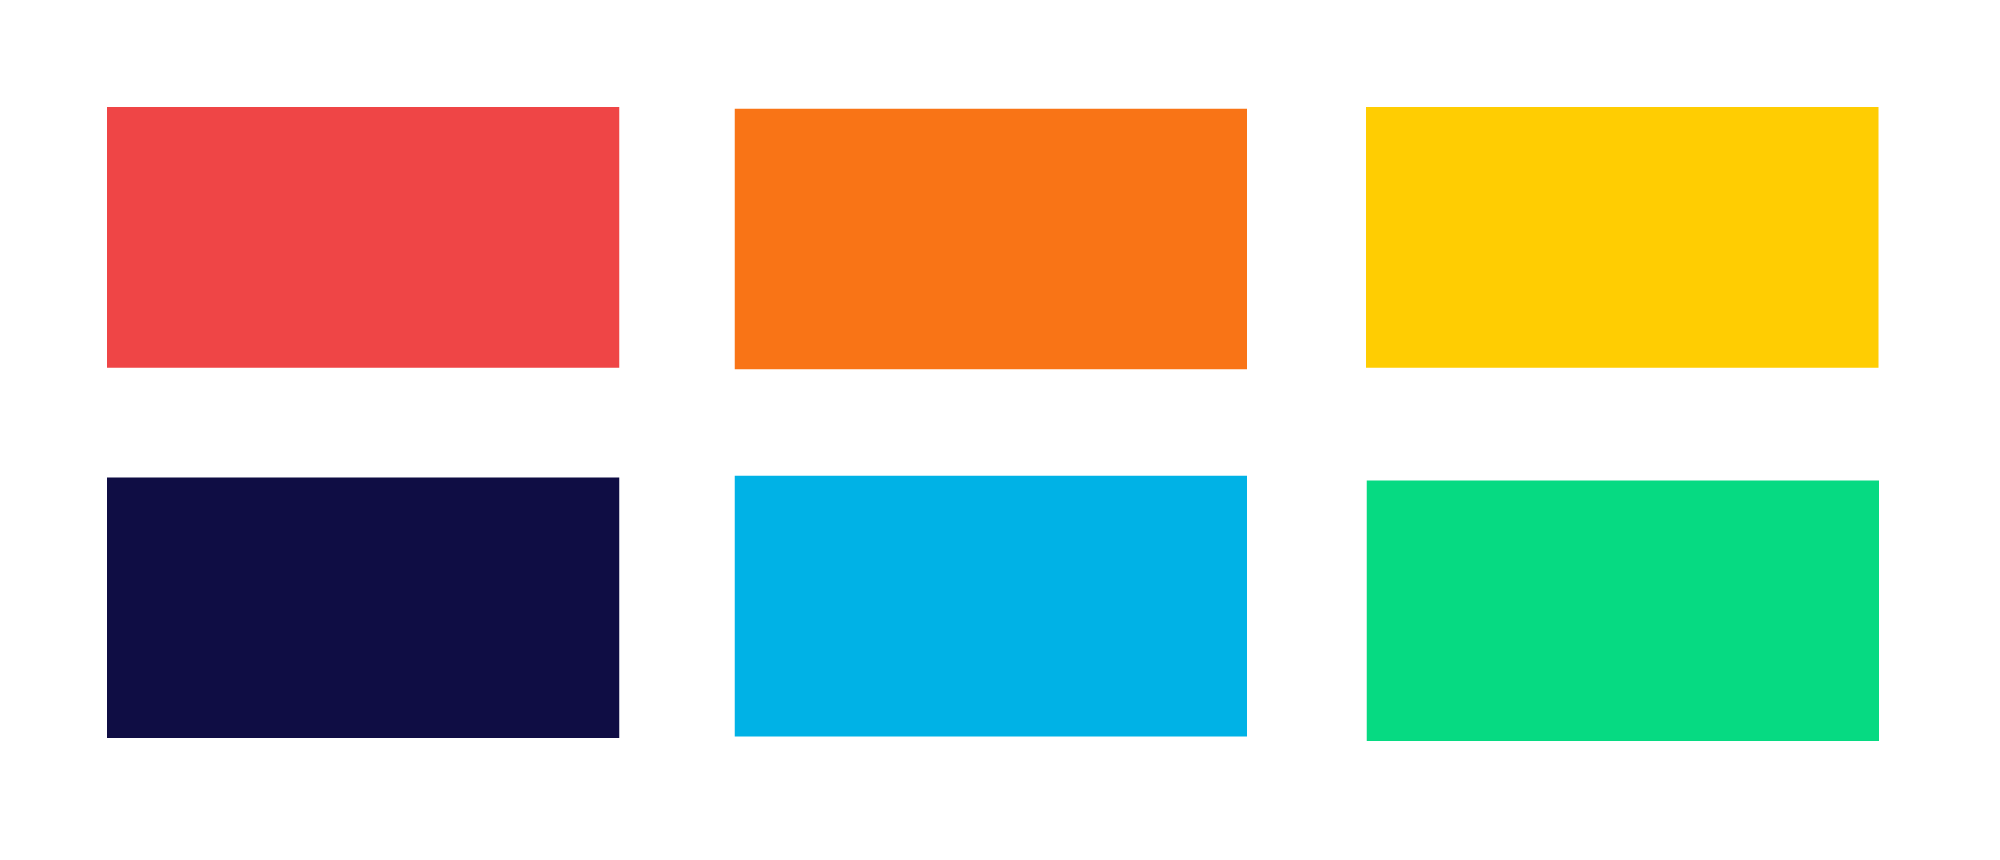 Six colored blocks showing our old brand colors. From top left, our old brand colors were red, orange, yellow, navy, blue, and green.